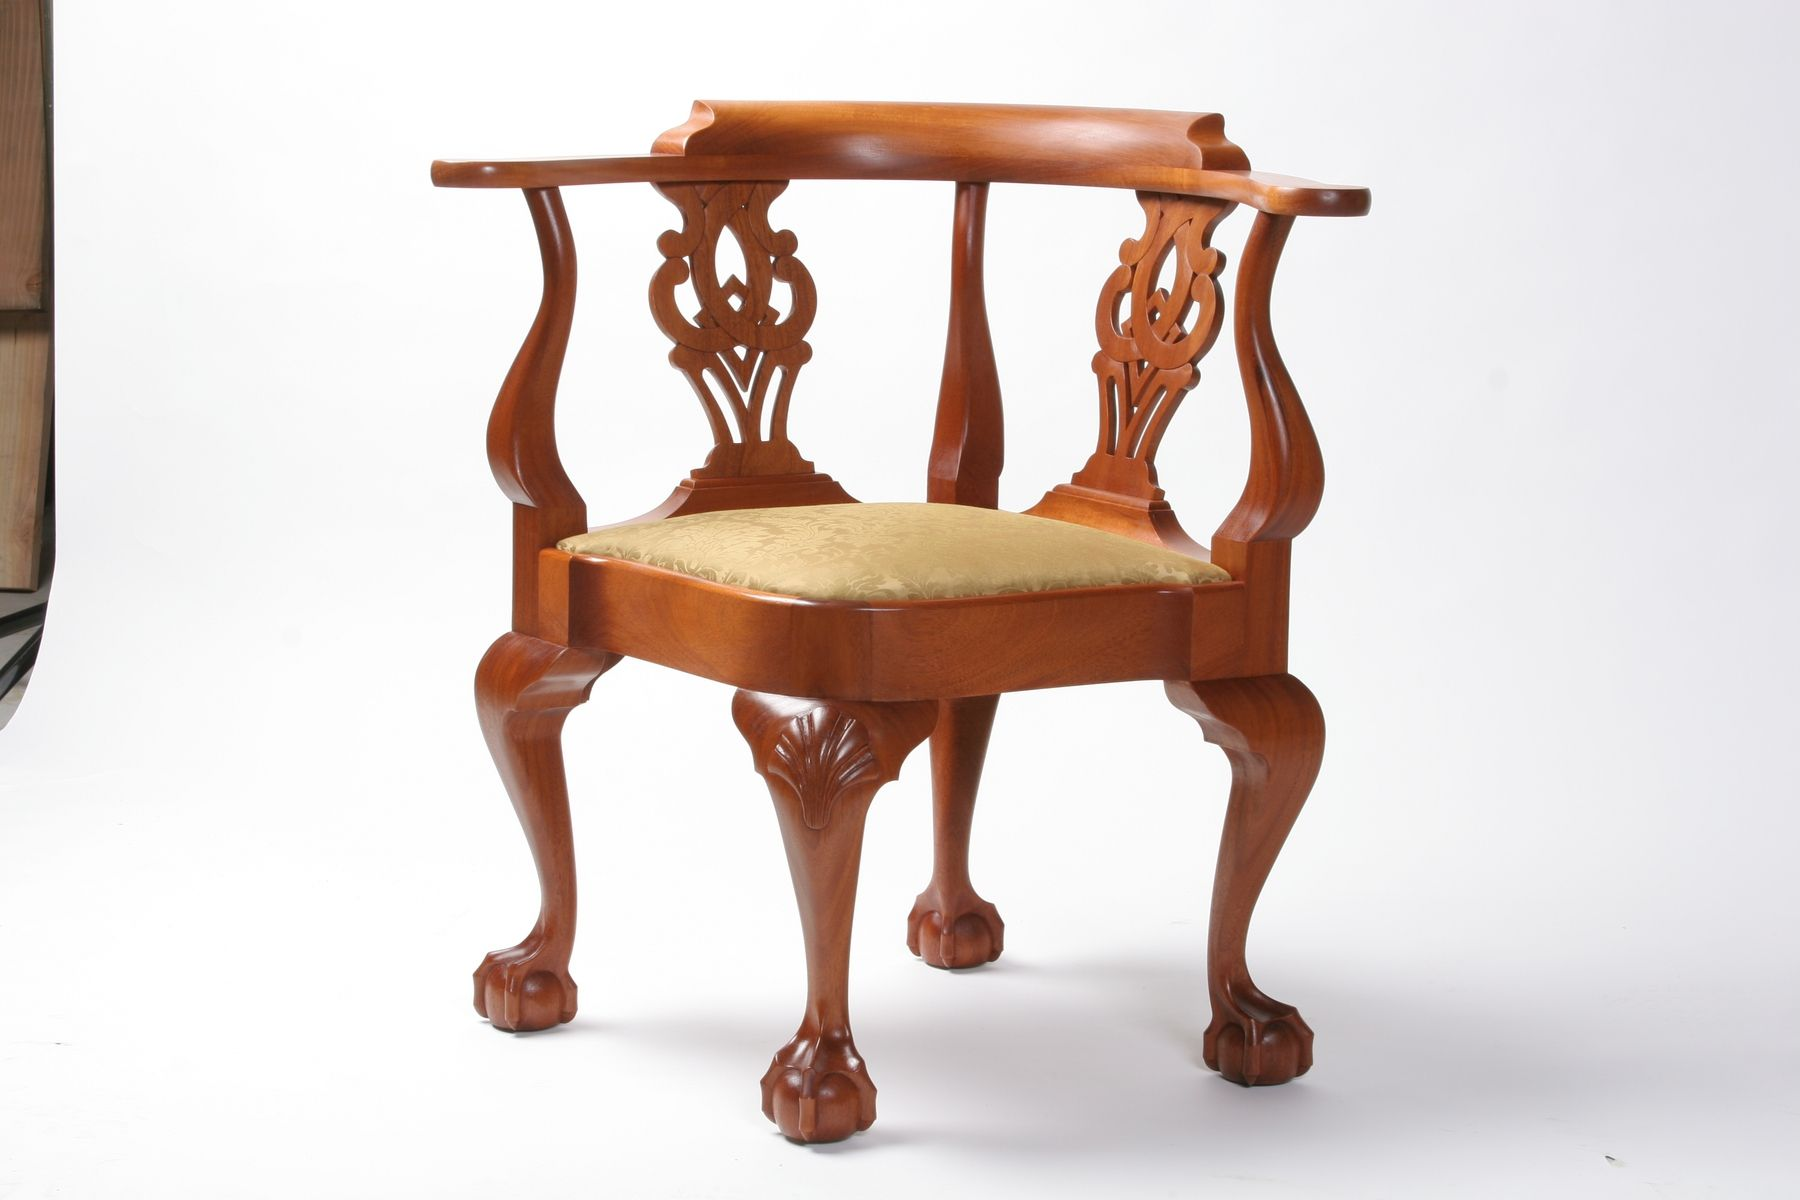 Handmade Chippendale Mahogany Corner Chair by W Mickey Callahan